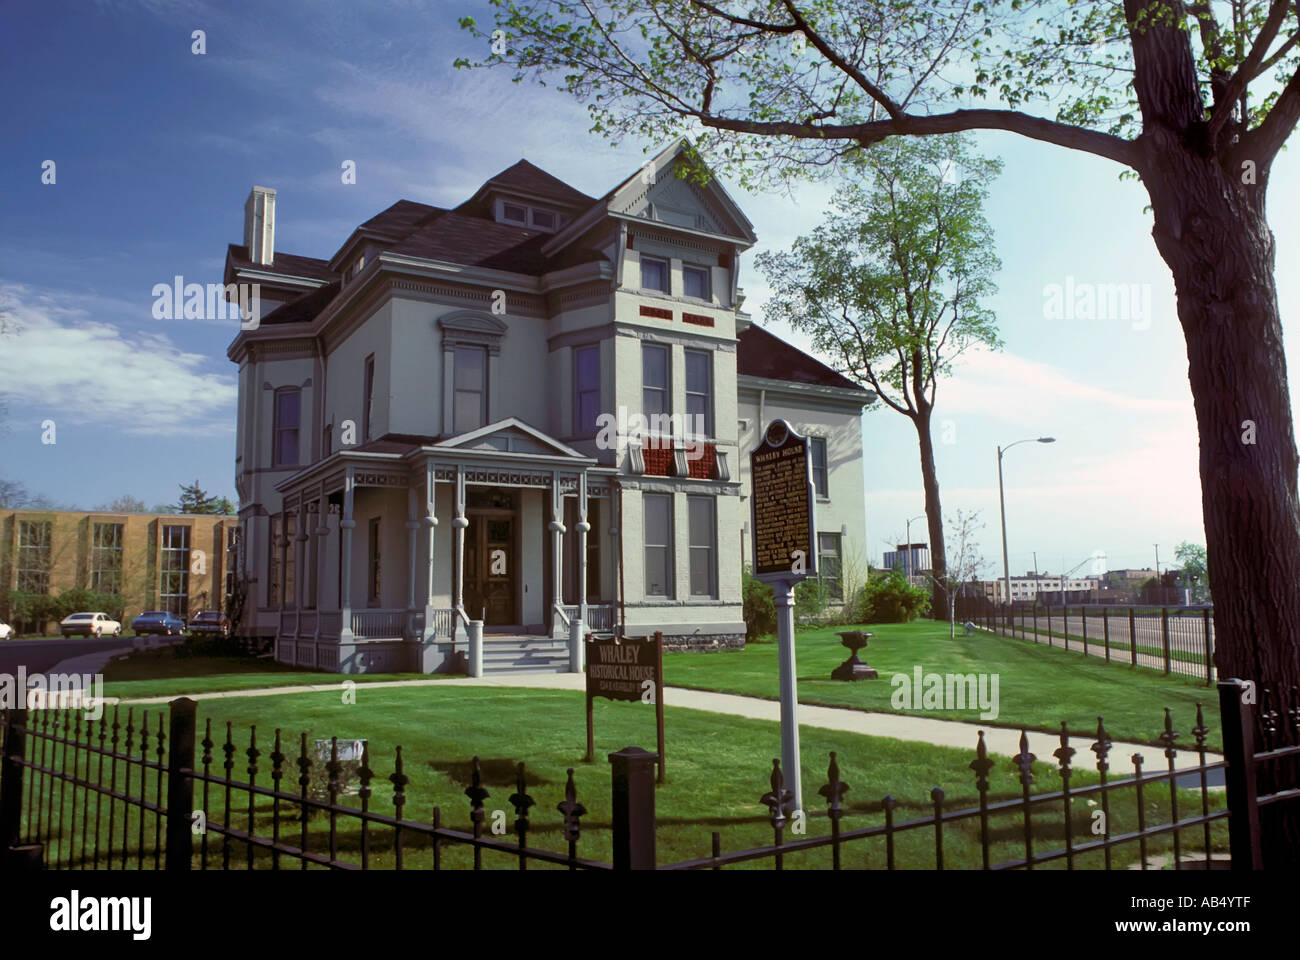 Whaley House an historical Victorian home in Flint Michigan - Stock Image